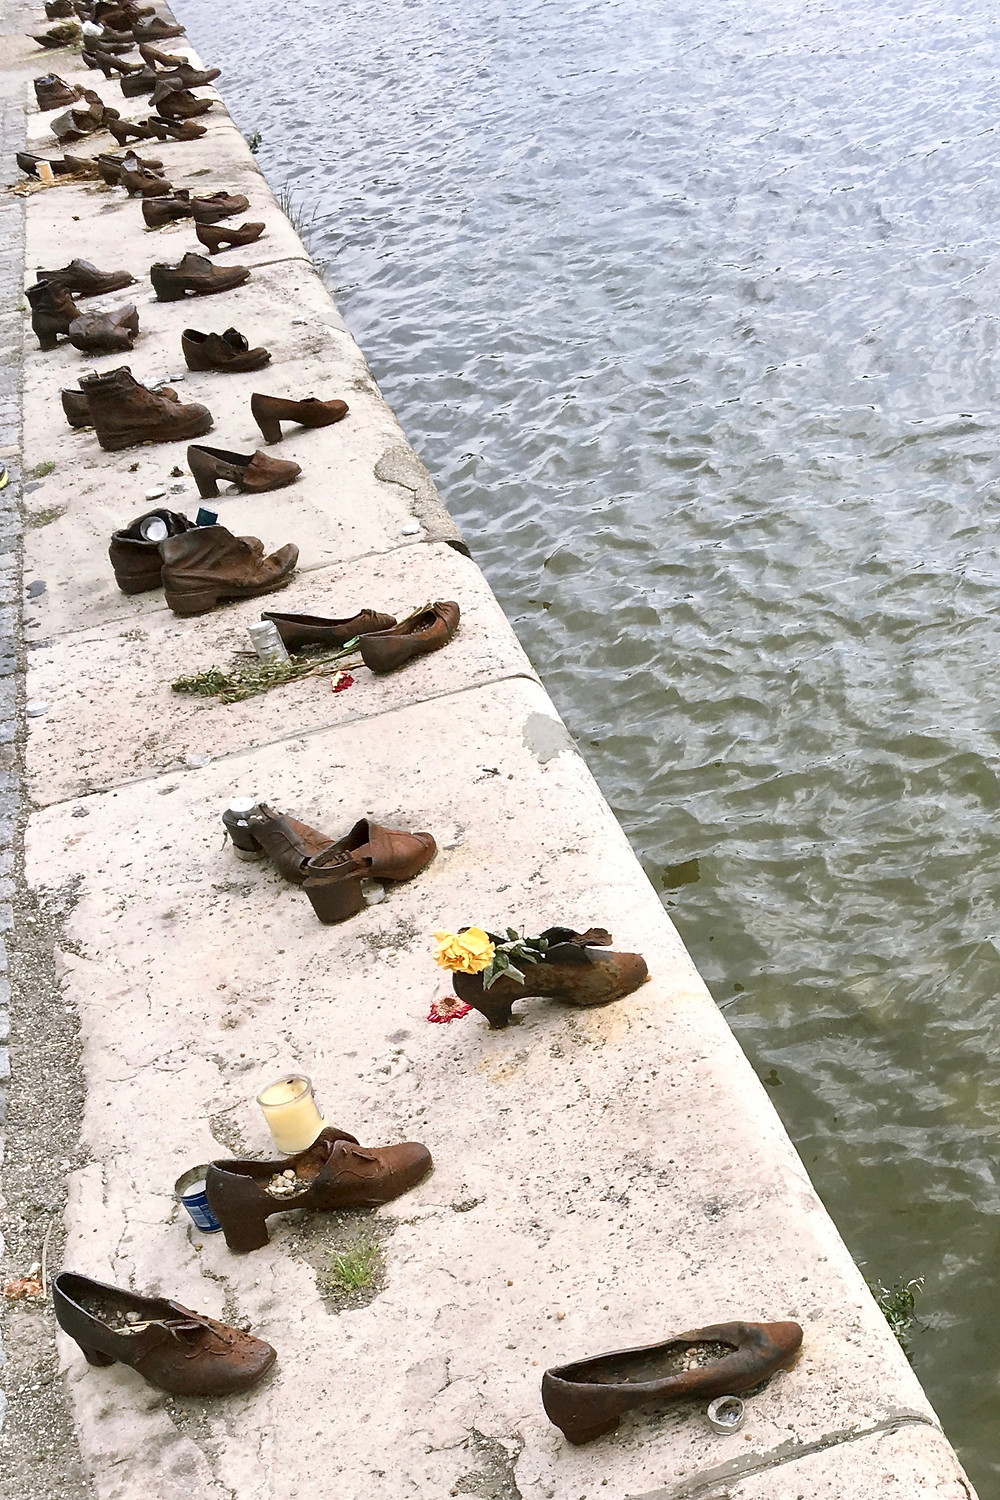 Countless metal shoes scattered at the edge of the Danube River as a part of the Shoes on the Danube Bank Monument in Budapest